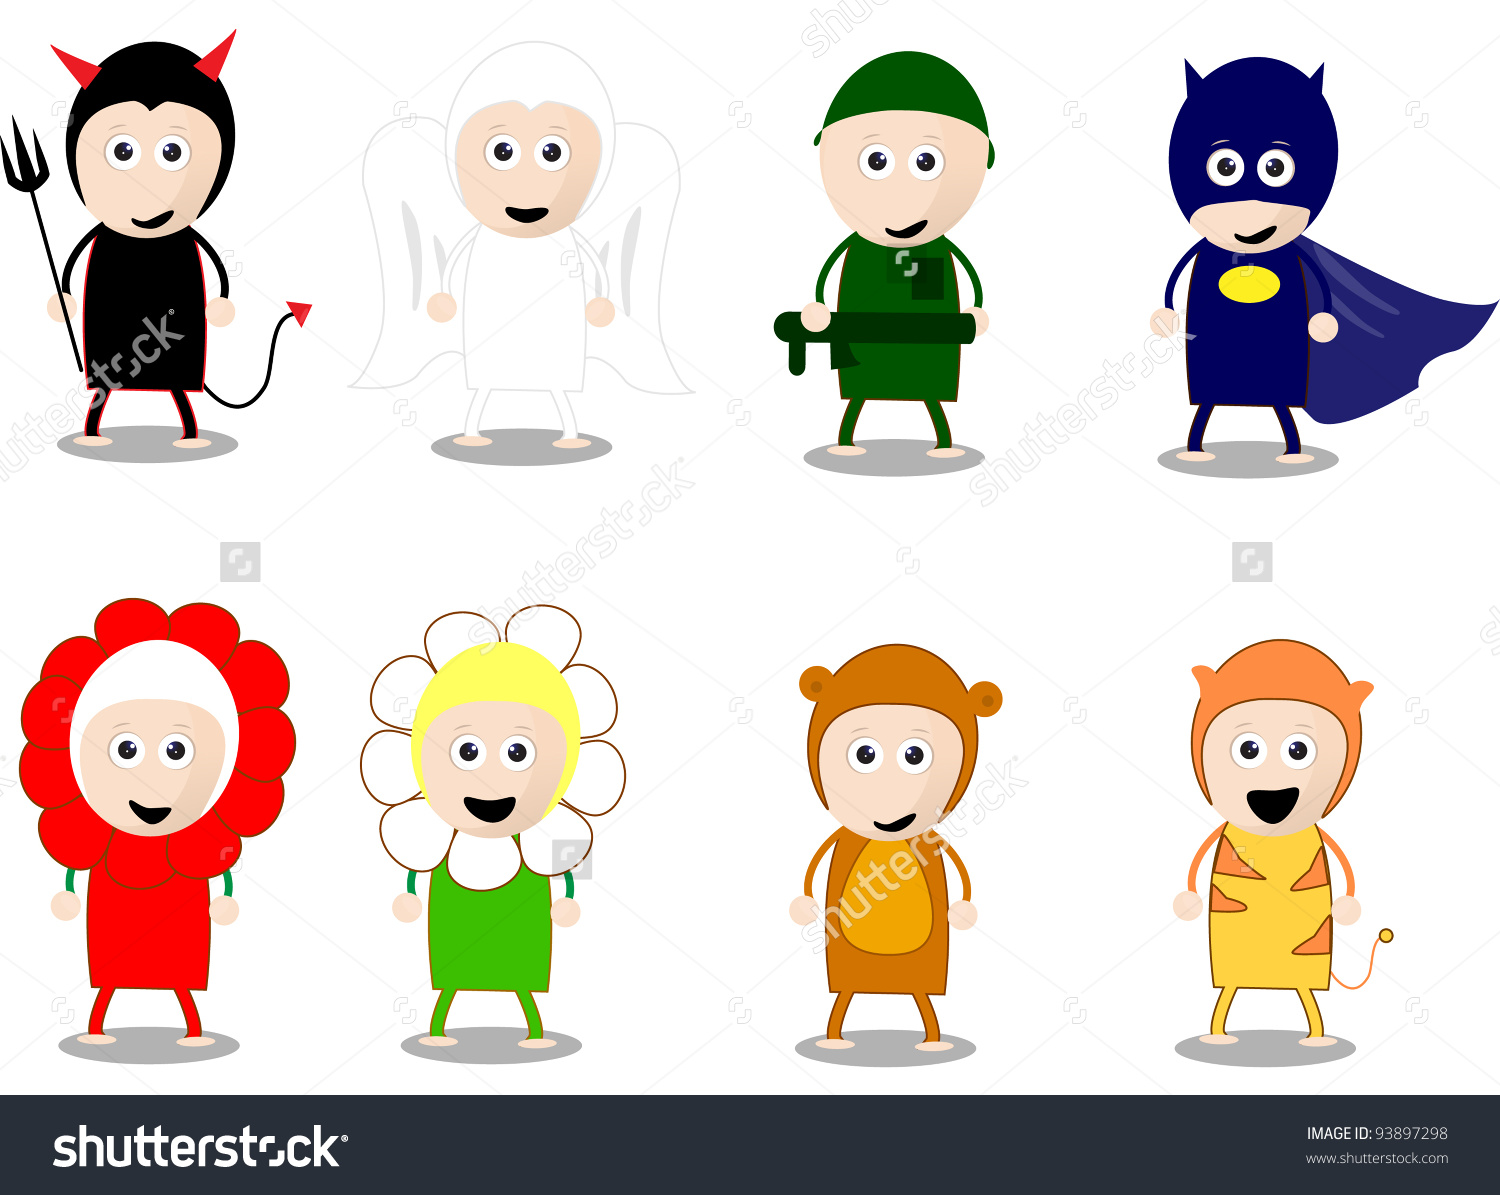 Kids character costumes clipart jpg freeuse Cartoon Character Costumes Kids Stock Vector Illustration 93897298 ... jpg freeuse